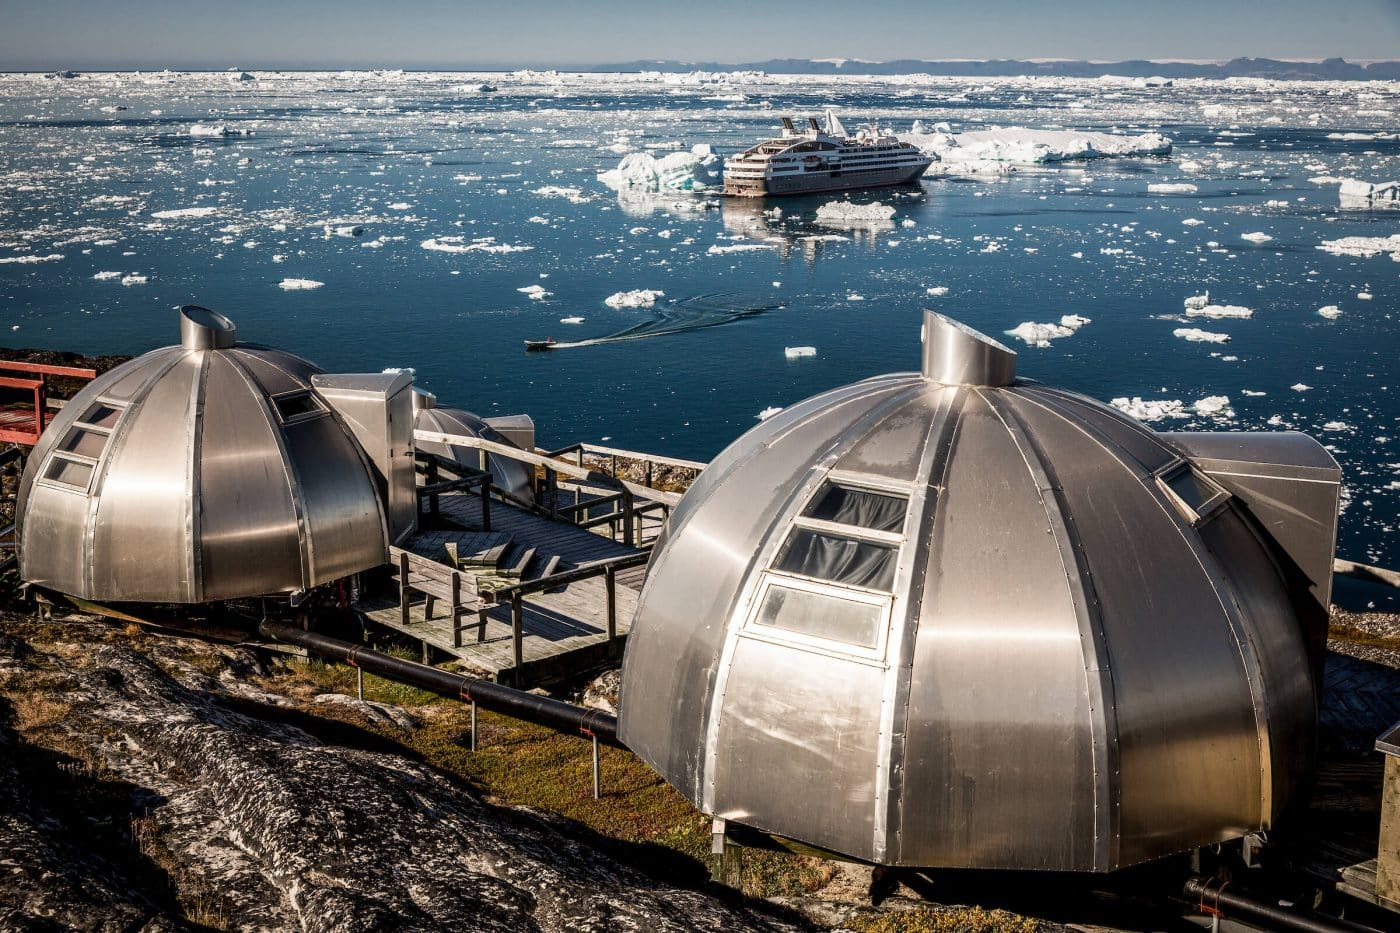 Ponant Cruises' L'Austral in front of the Hotel Arctic igloos in Ilulissat in Greenland. Photo by Mads Pihl